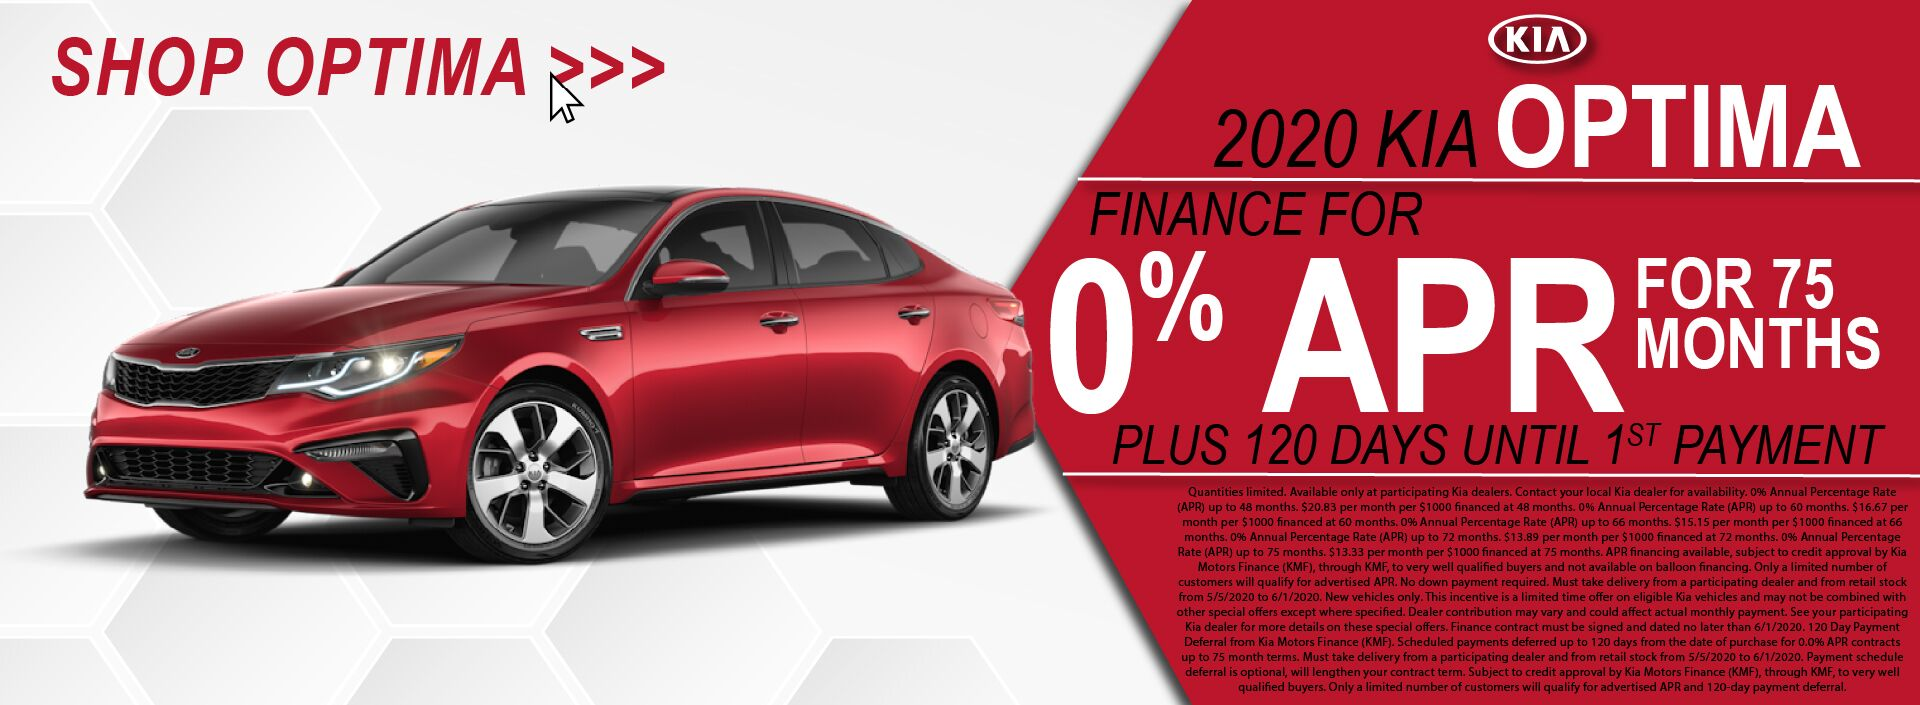 Bill Bryan Kia Optima 0% APR